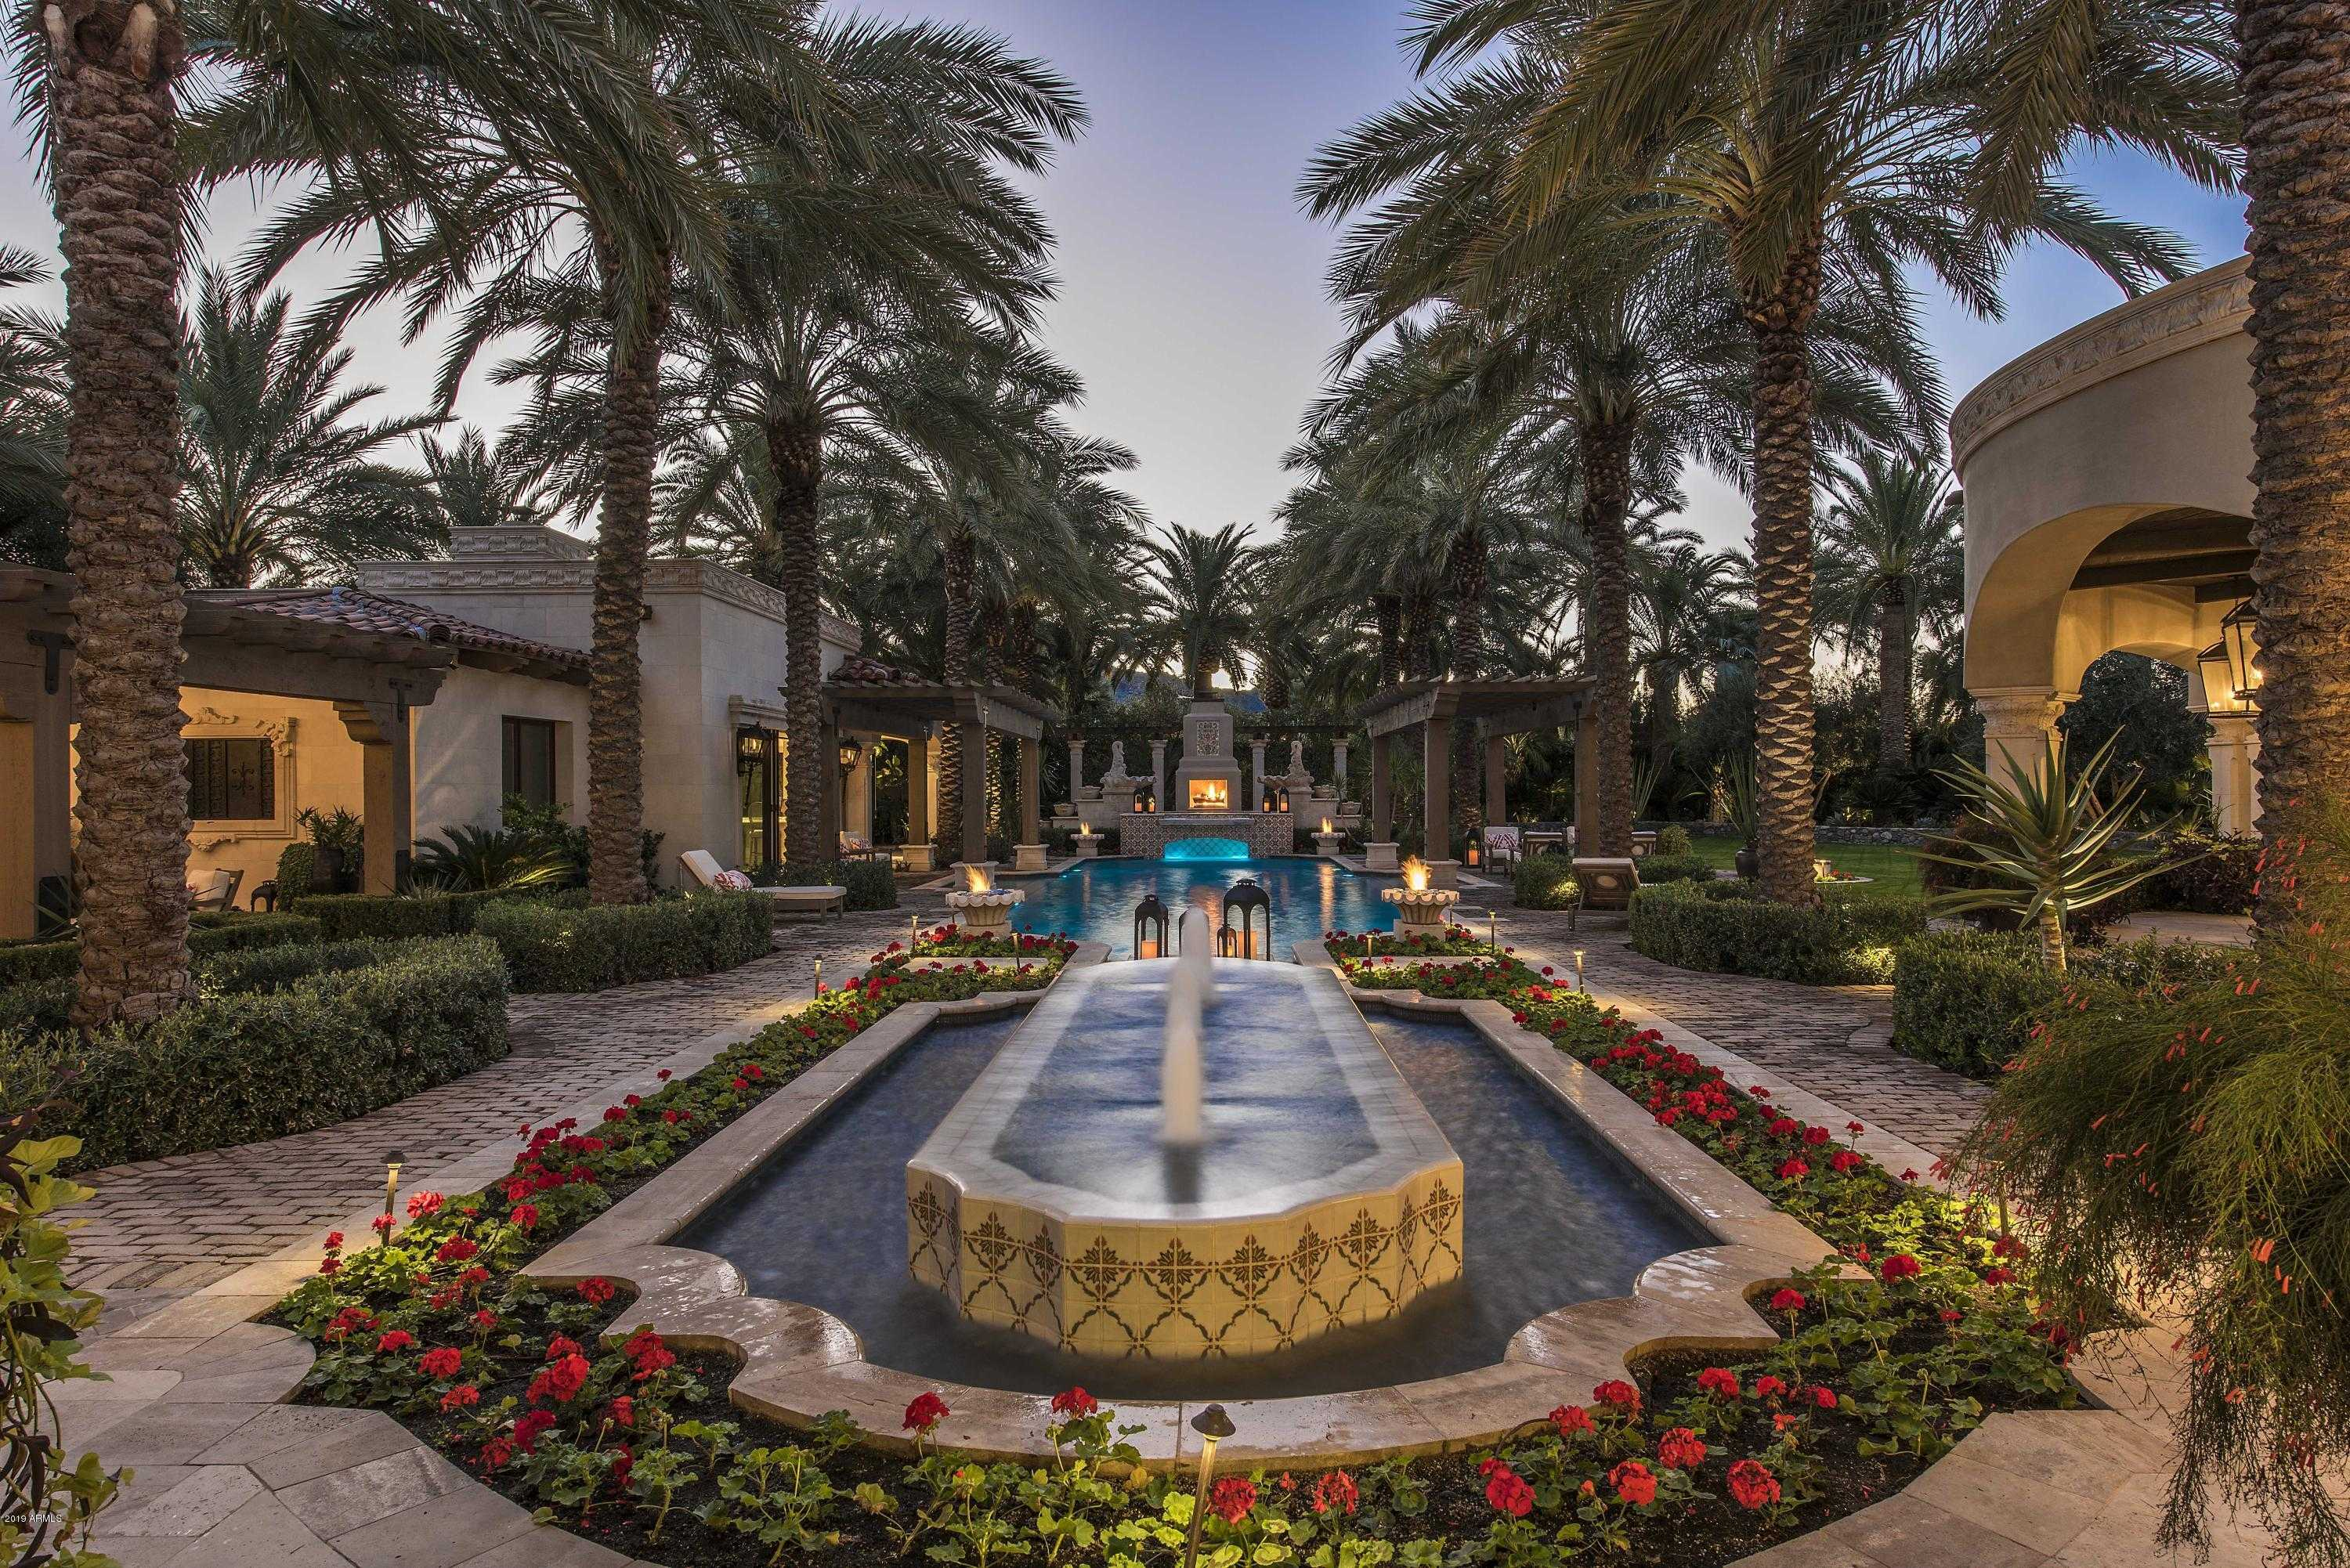 $6,995,000 - 5Br/7Ba - Home for Sale in Gary Estates, Paradise Valley